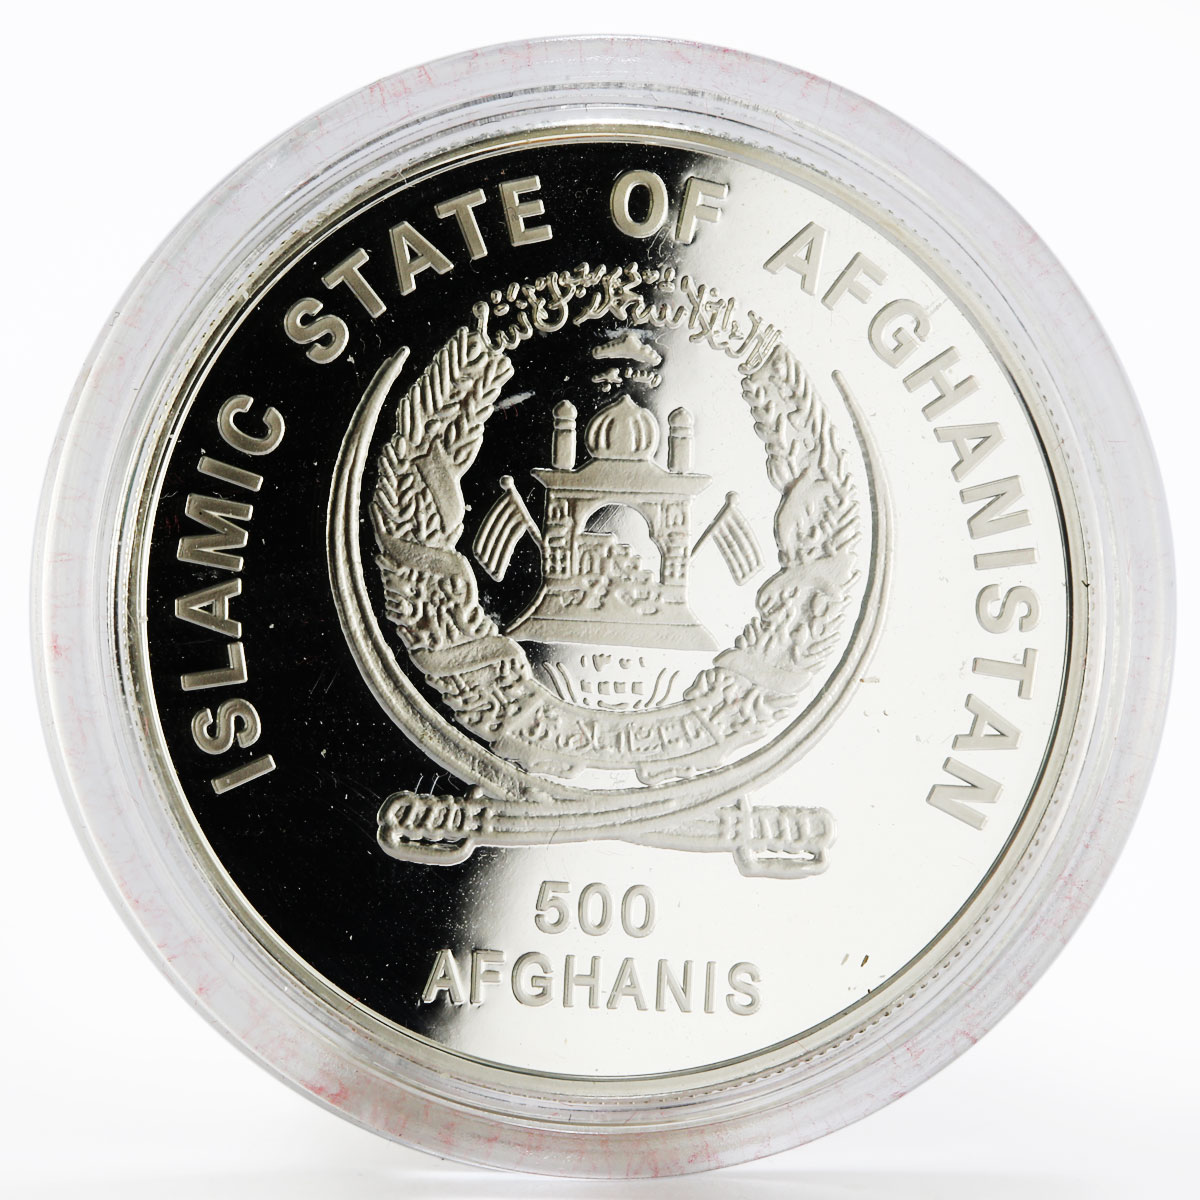 Afghanistan 500 afghanis Football World Cup Germany 2006 proof silver coin 2001